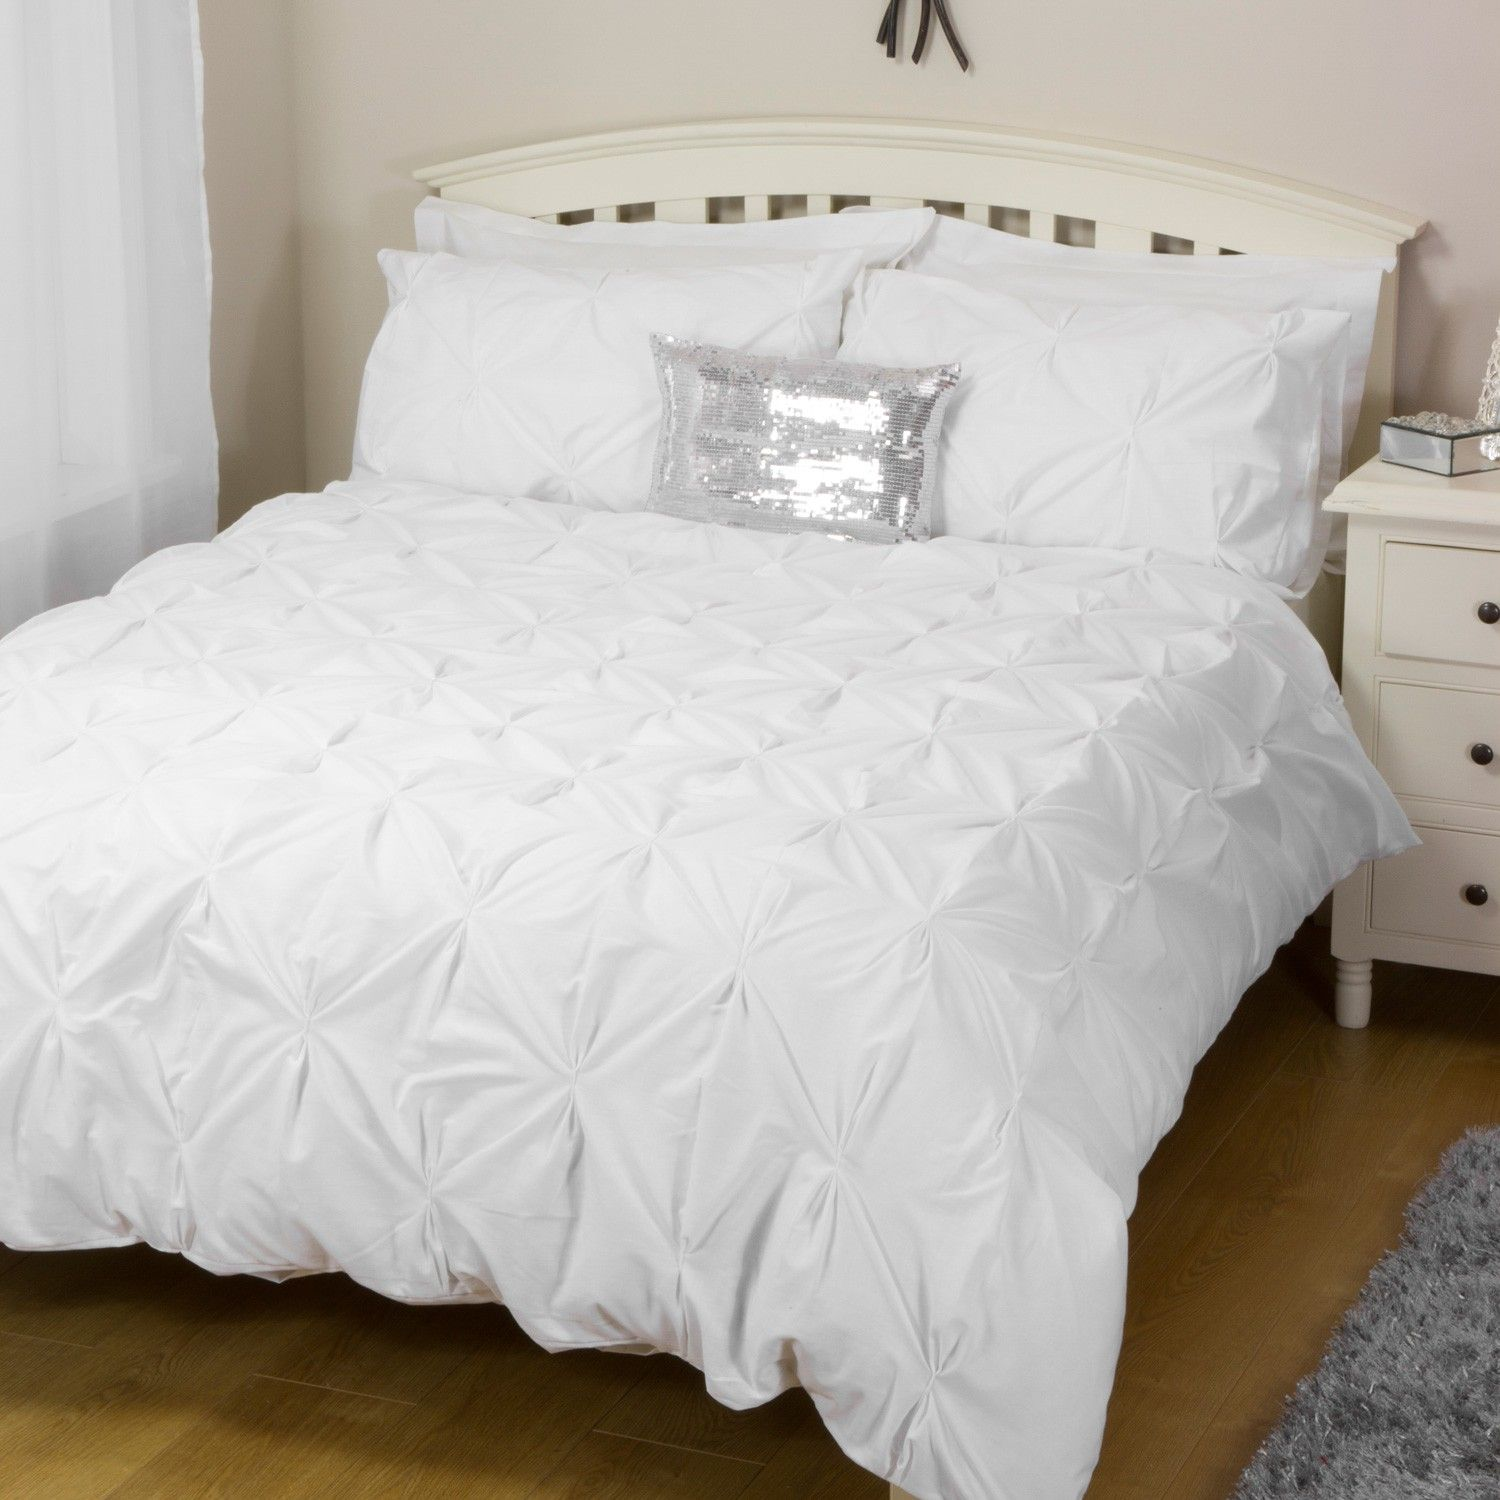 online cover house buy cotton duvet linea to your why pin fraser of not where egyptian now a at